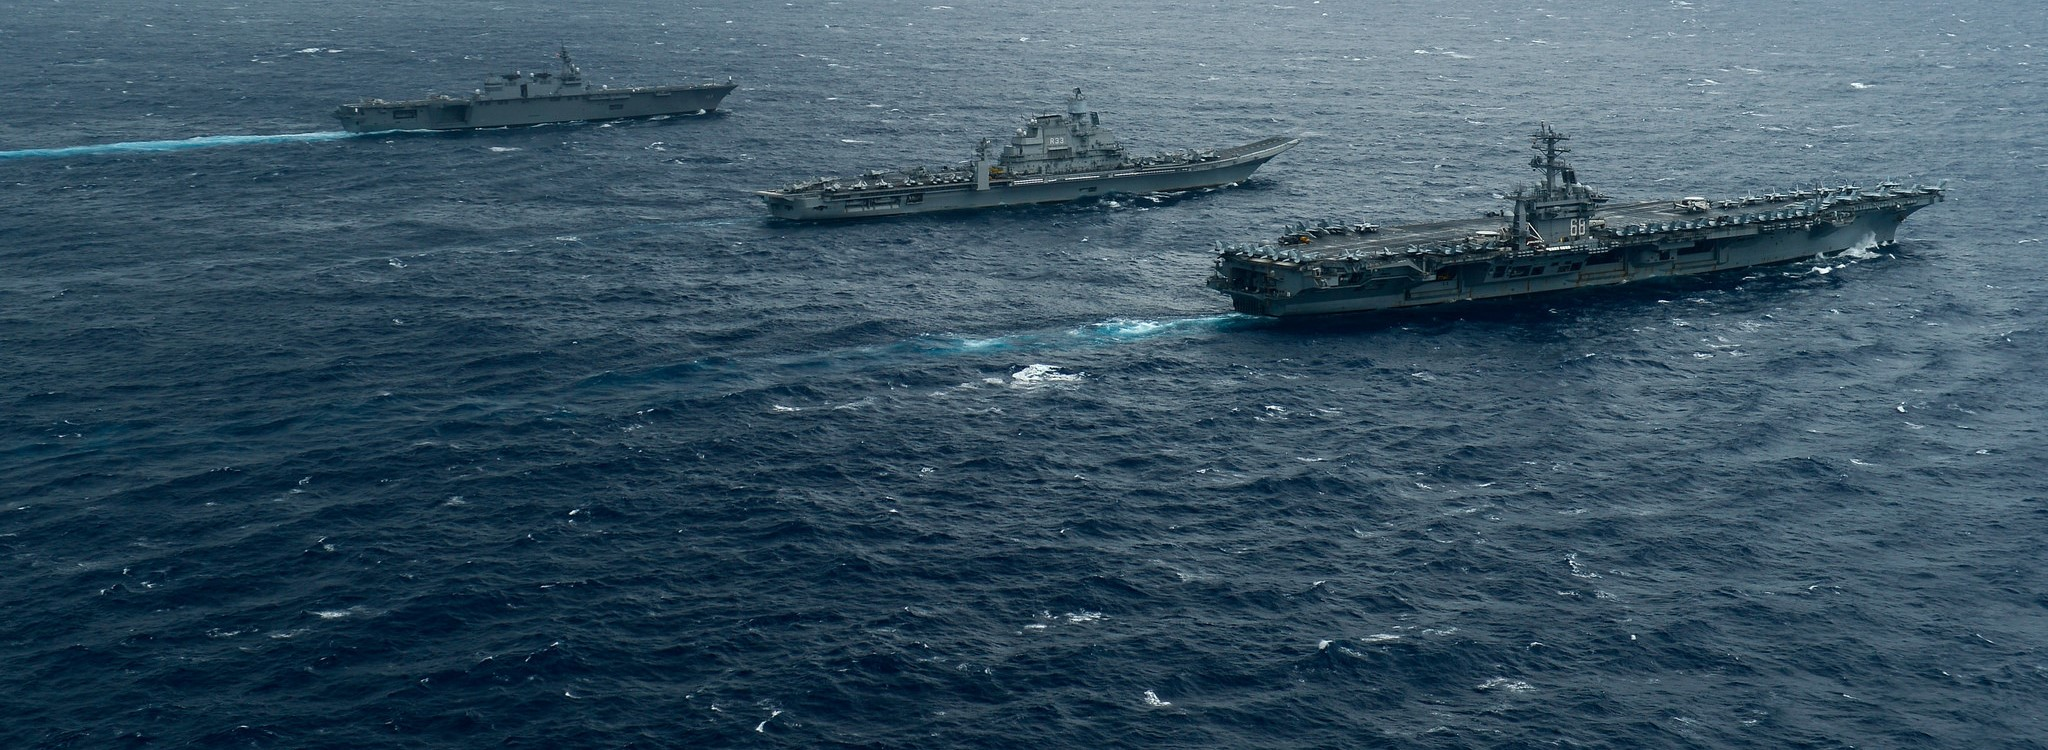 Ships from the Indian Navy, Japan Maritime Self-Defense Force and the US Navy operating in Exercise Malabar 2017, July 2017 (Photo: US Pacific Fleet/Flickr)